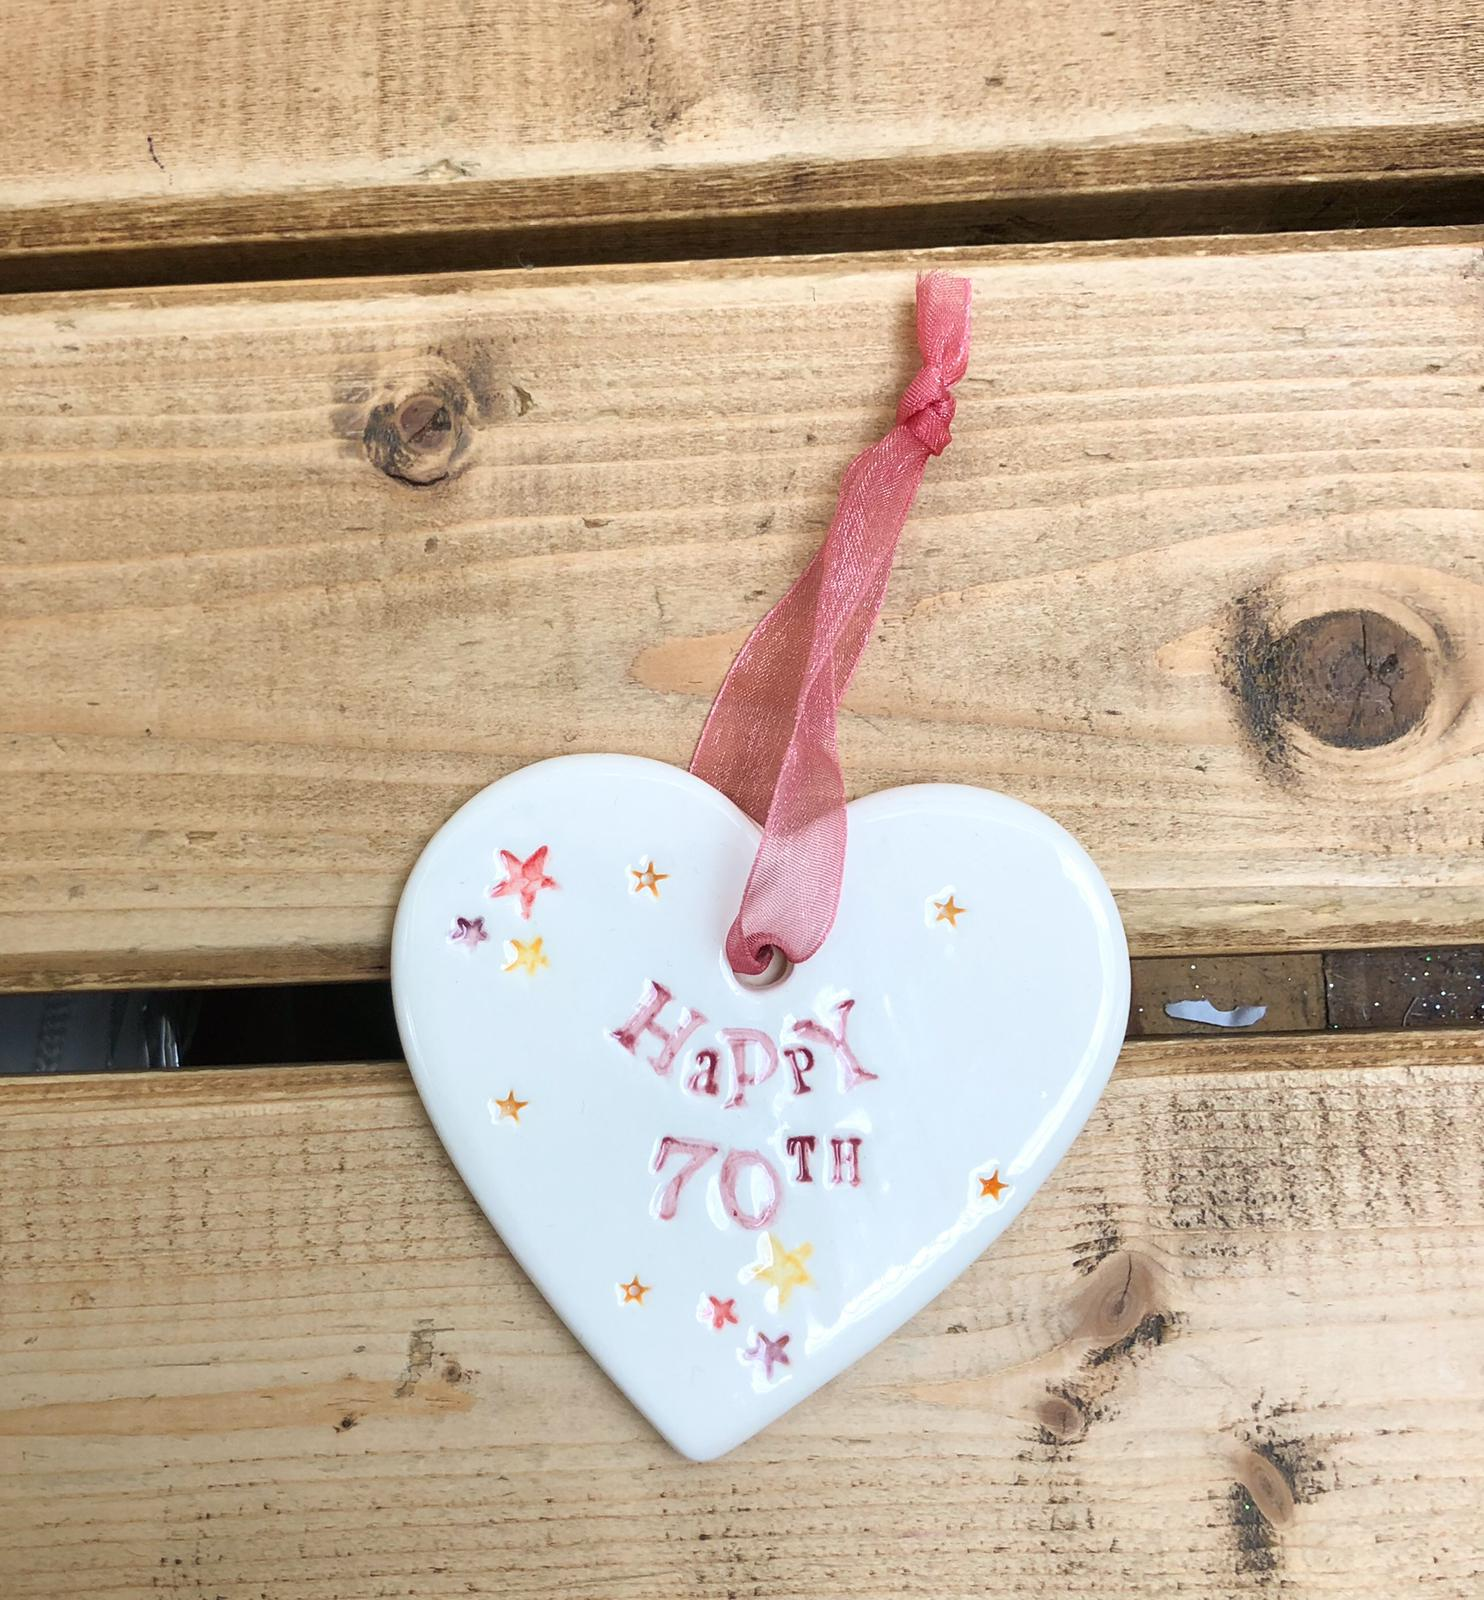 Hand painted ceramic heart featuring star design and the sentiment 'Happy 70th' Handmade in the UK using clay, glaze and paint sourced locally. Material: Ceramic